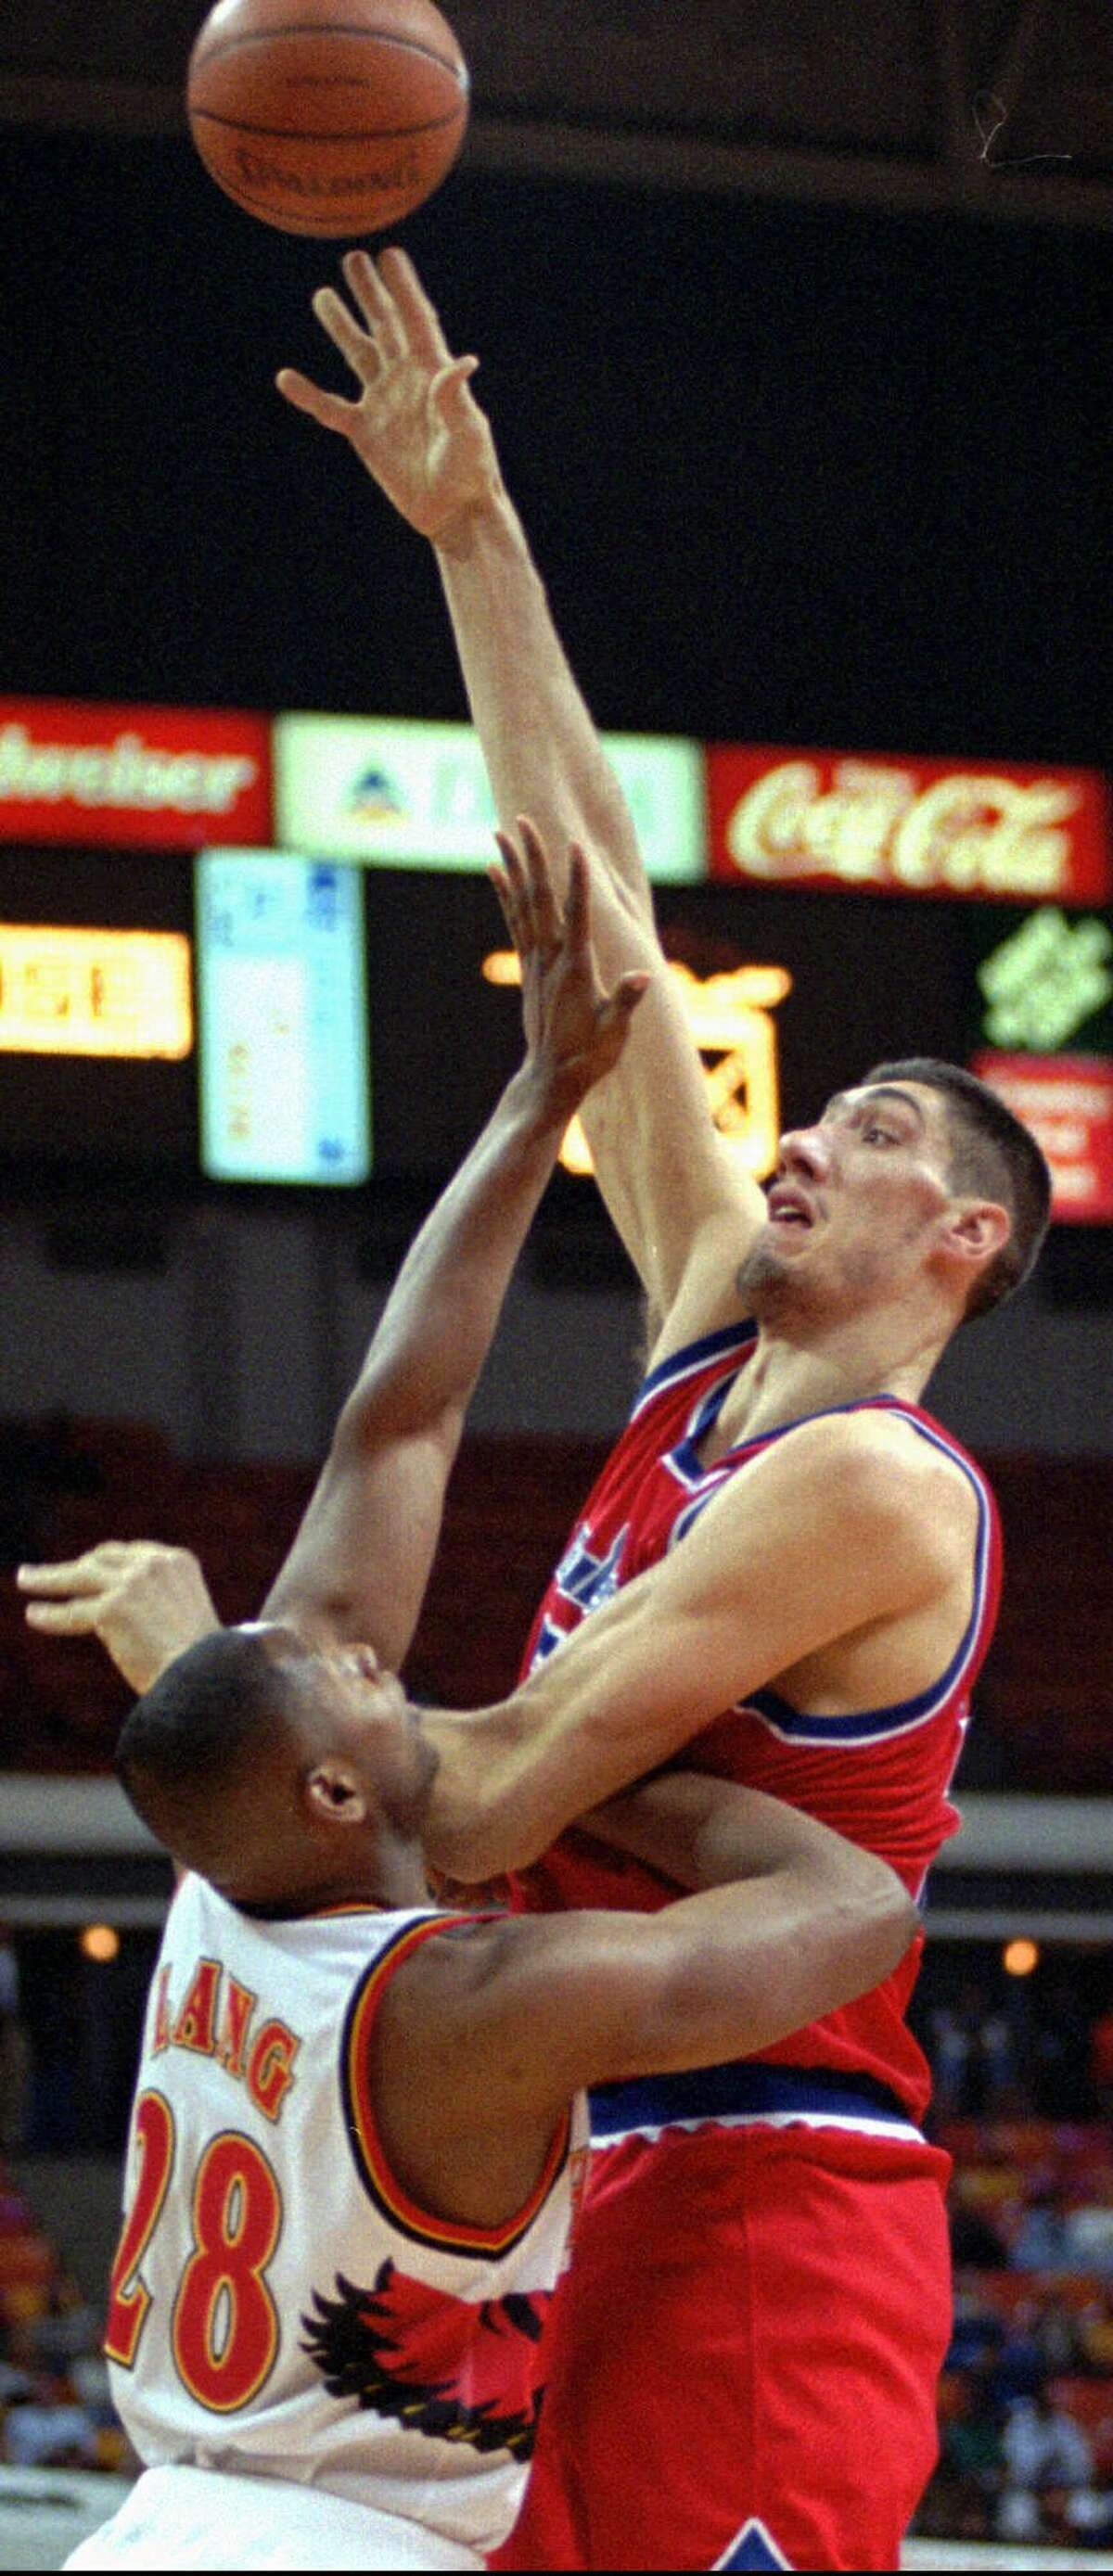 TALLEST PLAYERS IN NBA HISTORY Gheorghe Muresan,7-7 Although both Muresan and Bol were listed at 7-7, Muresan measured slightly taller than Bol. He played for the Washington Bullets (1993-97) and the New Jersey Nets (1998-2000).